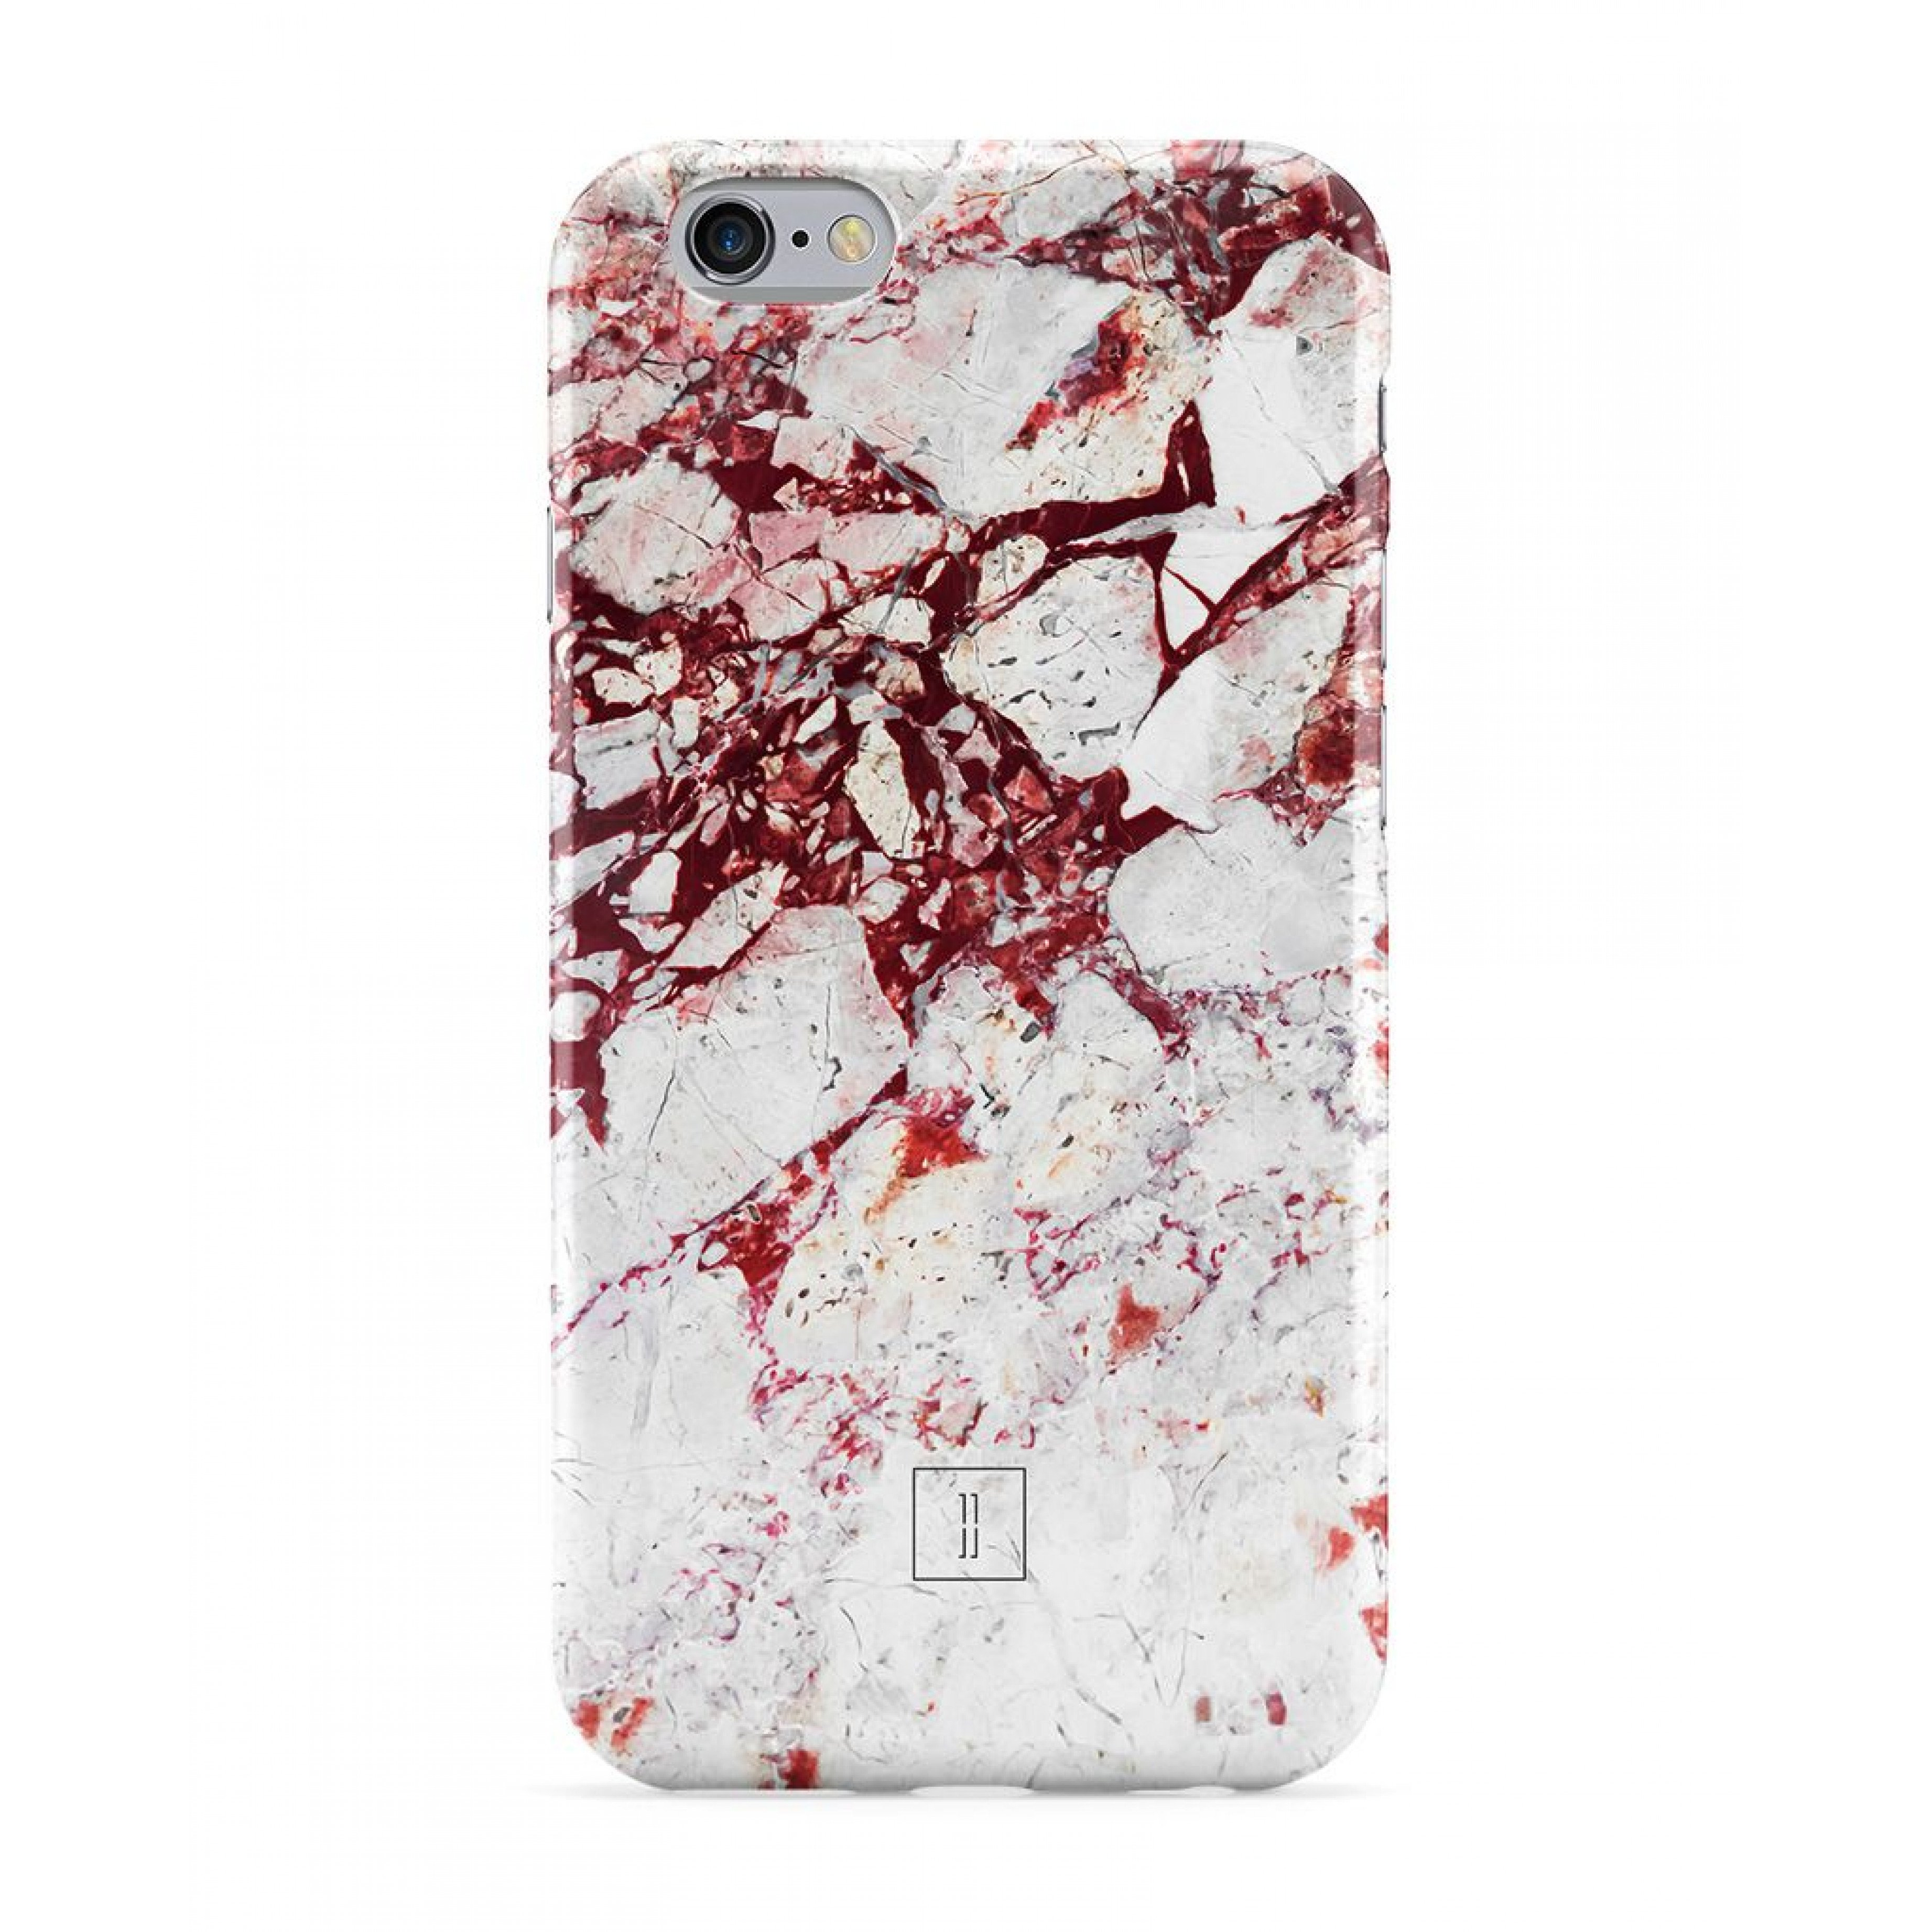 White and Red Marble Smartphone Case